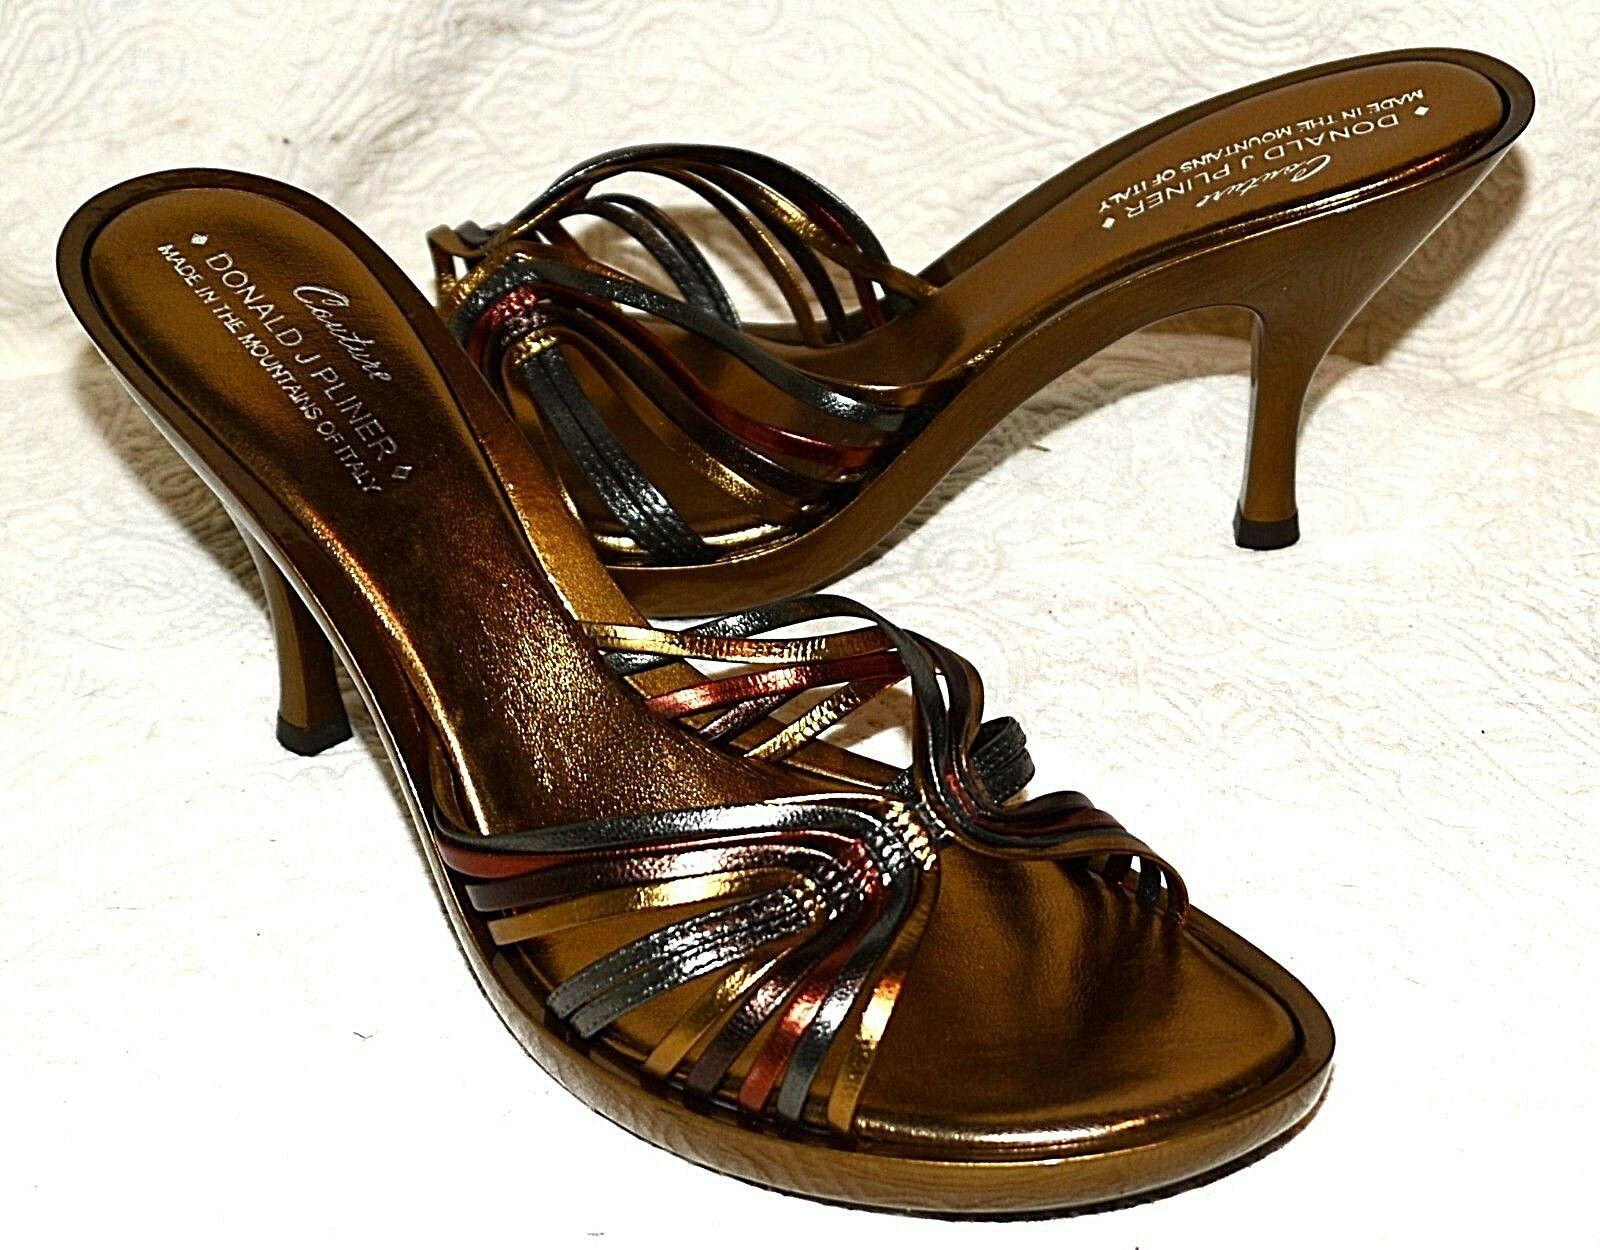 New Donald J Pliner Pliner Pliner Couture Bronze metallic leather Sandals schuhe heels 9N Odino 31207f